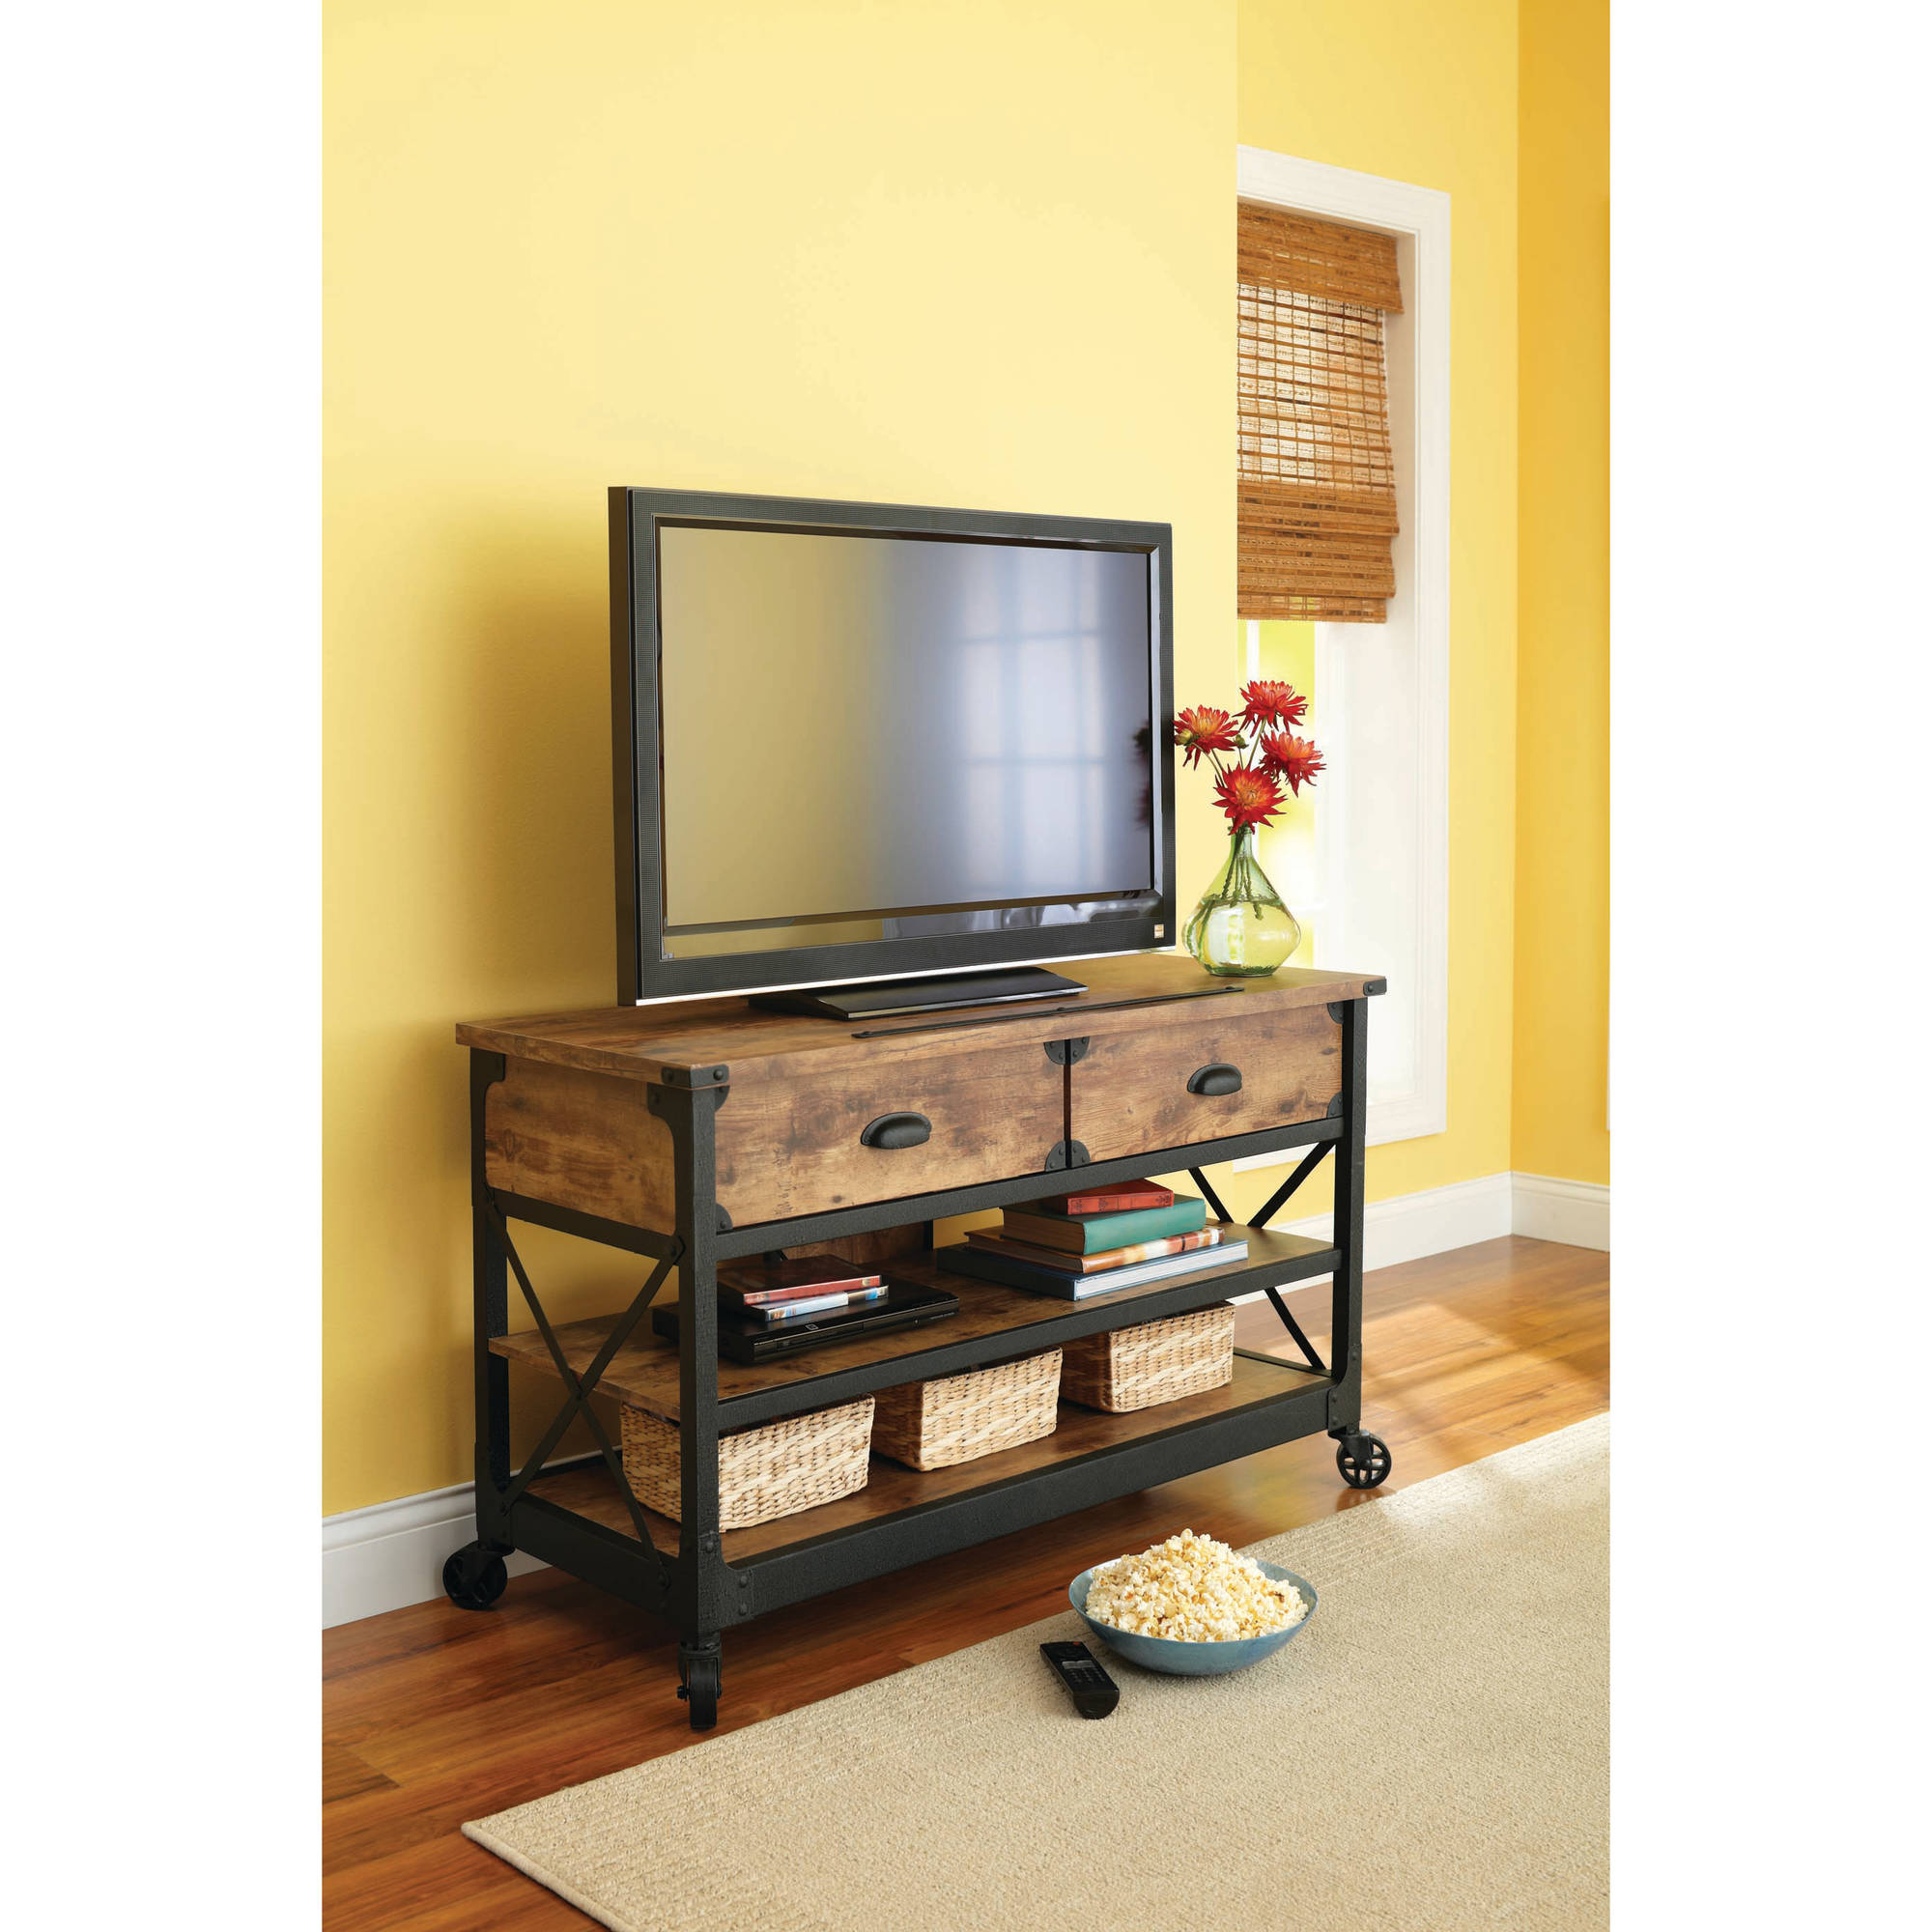 Better Homes And Gardens Rustic Country Antiqued Black/Pine Panel TV Stand  For TVs Up